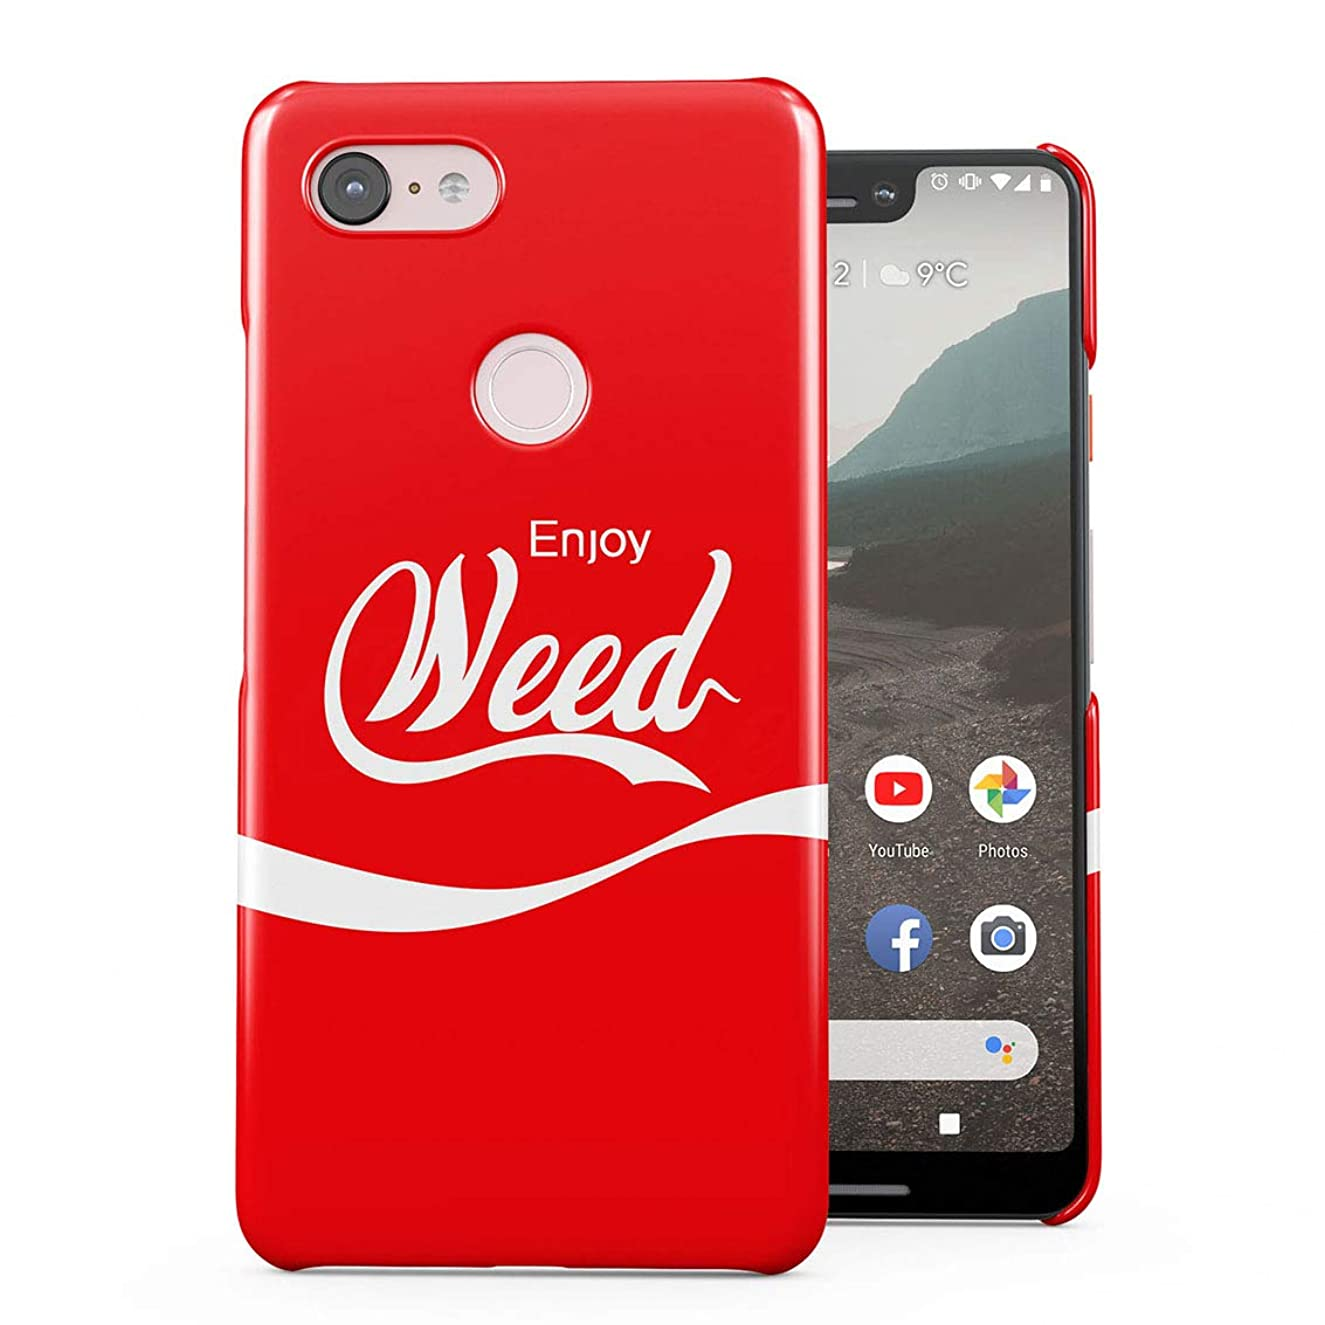 Stoner Quote Enjoy Weed 430 High Mary Jane Plastic Phone Snap On Back Case Cover Shell for Google Pixel 3 XL